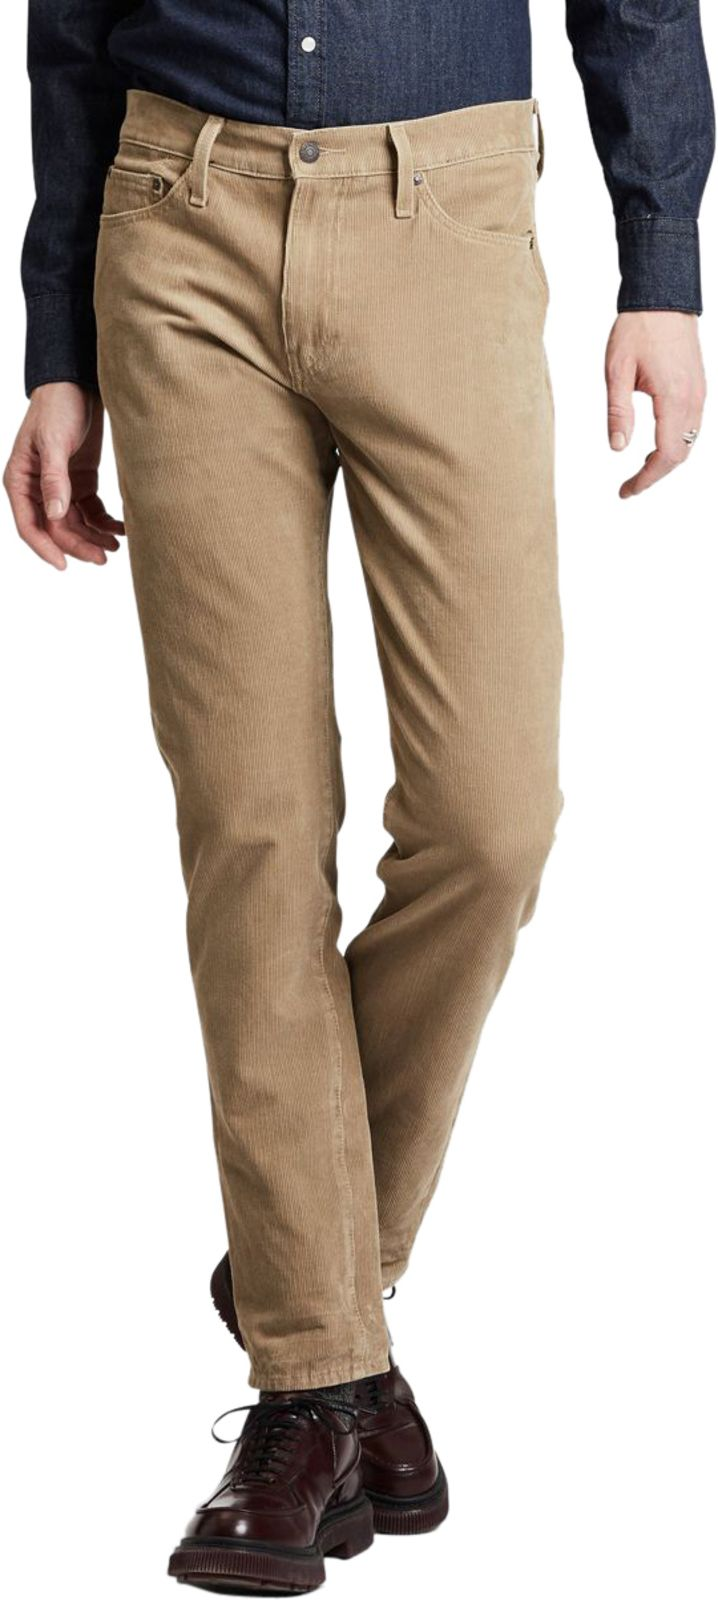 Levi's 511 Slim Fit Denim Jeans Beige